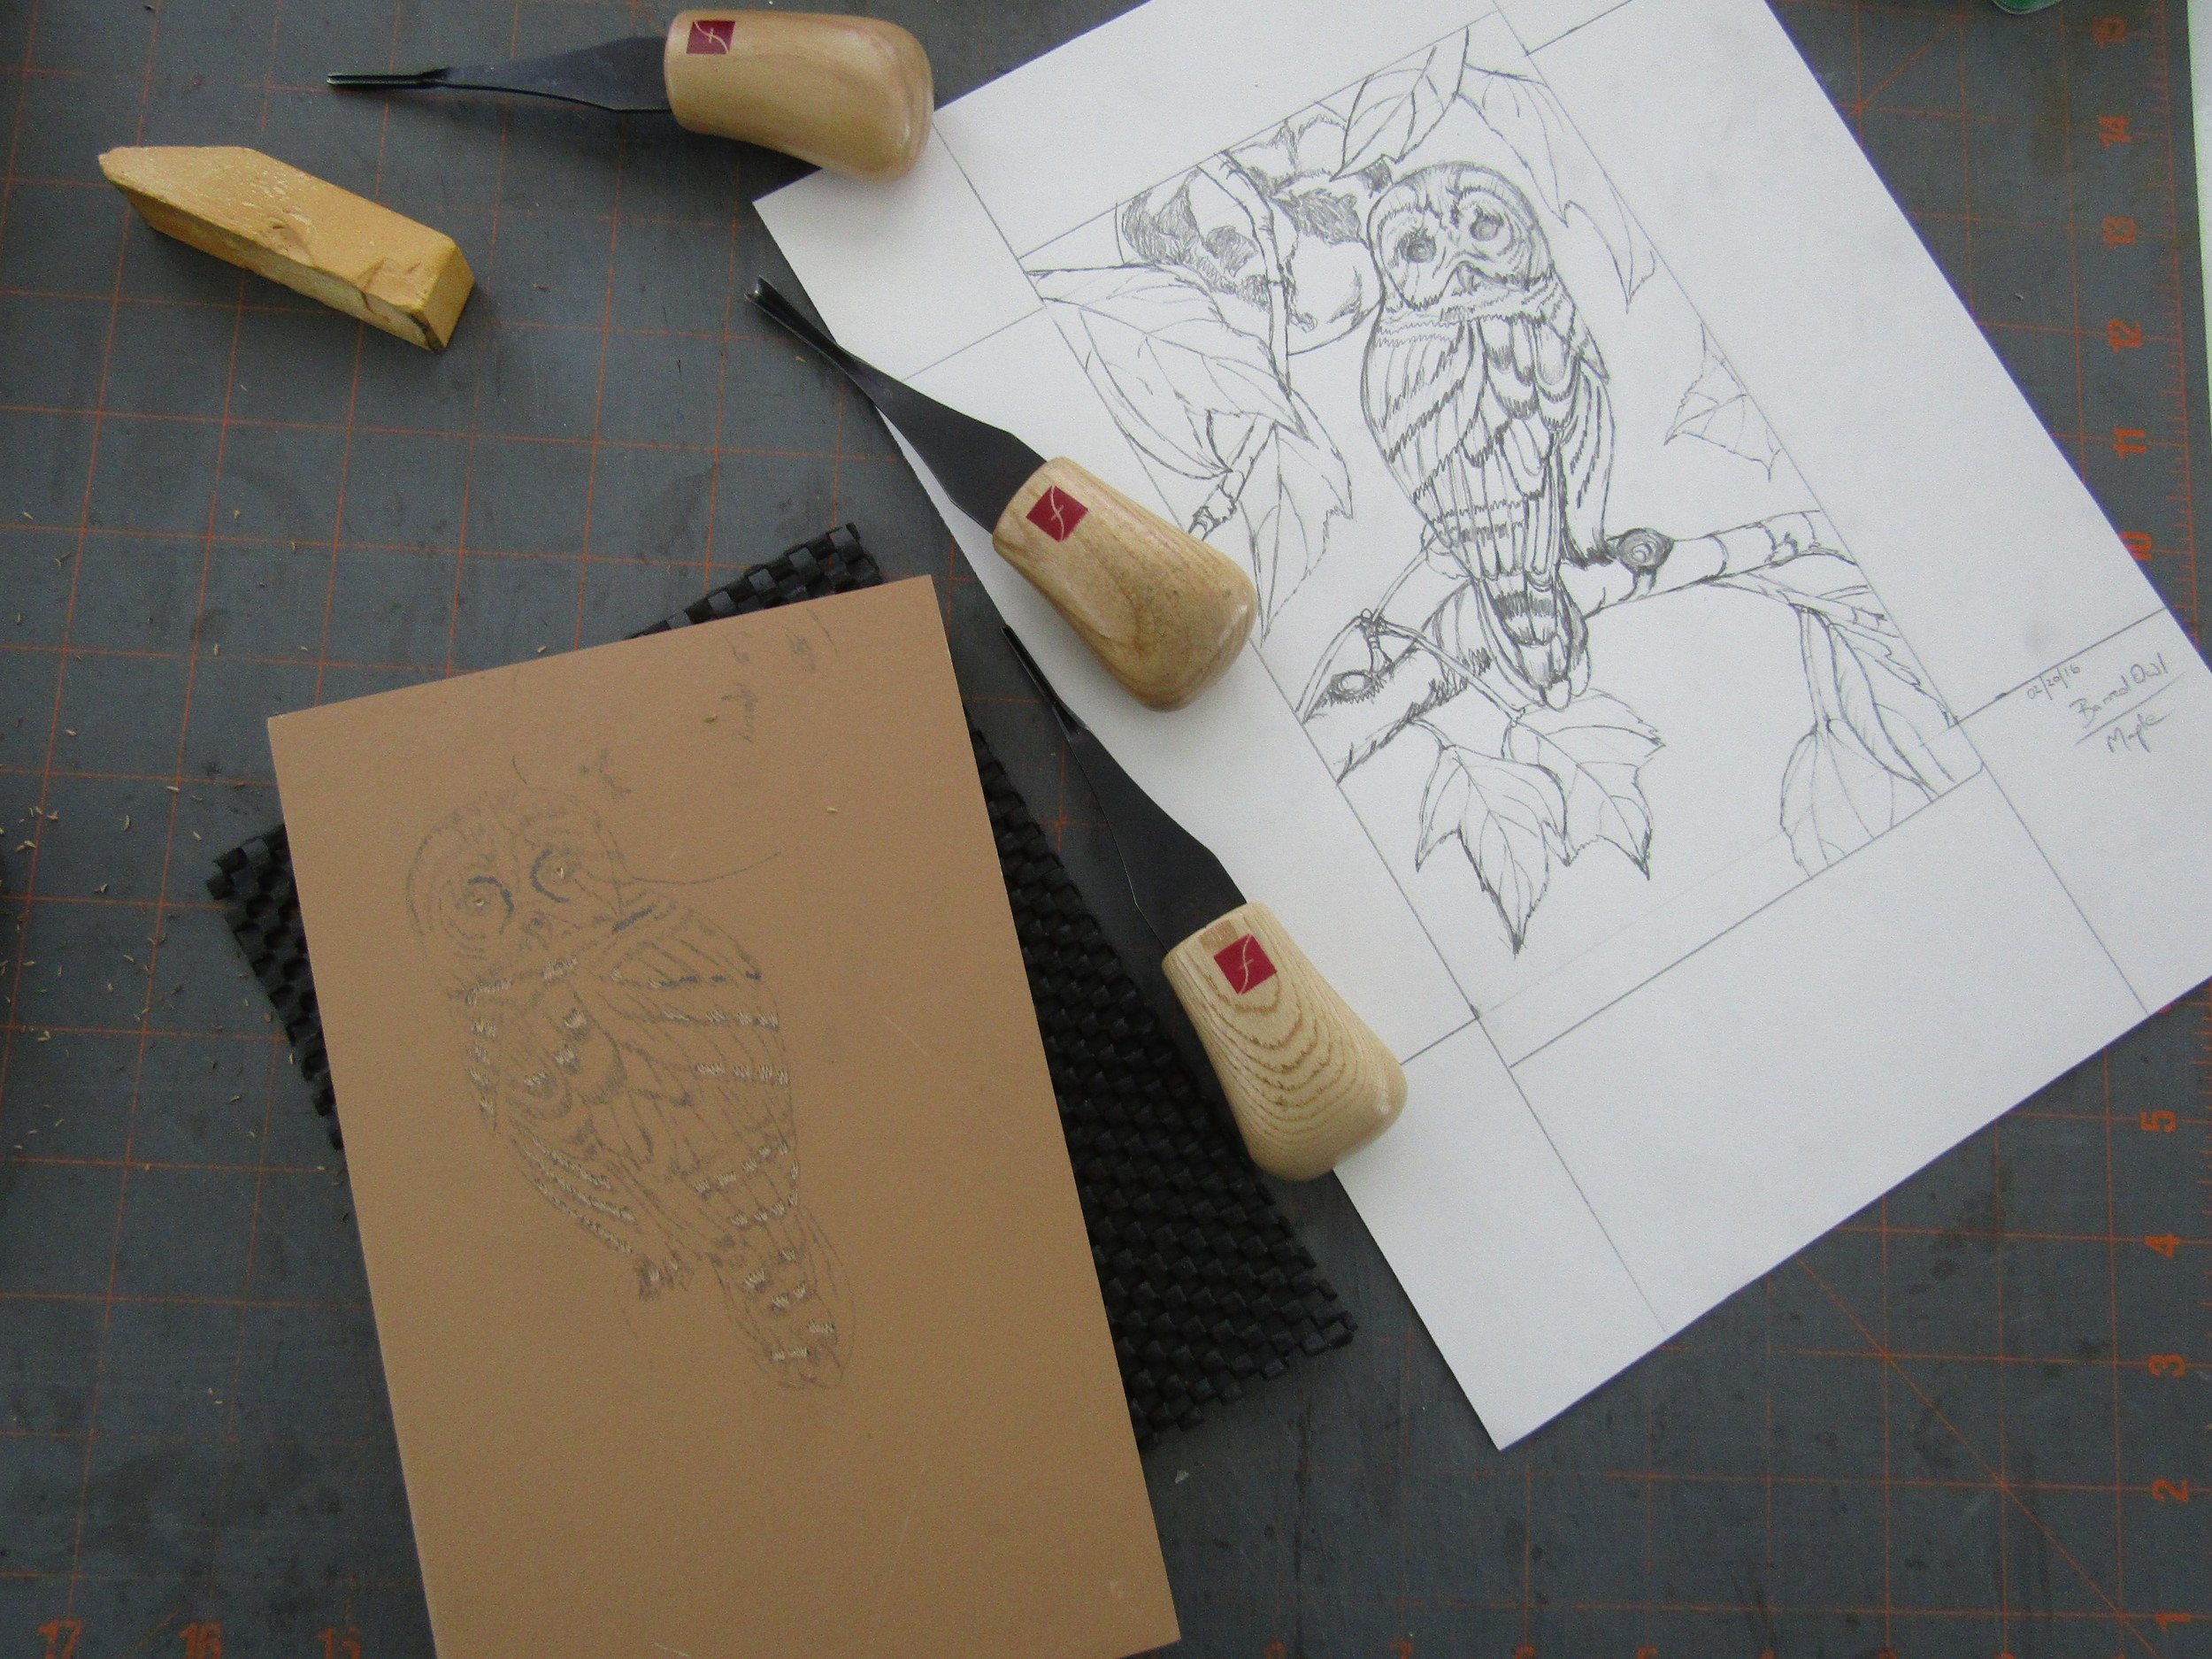 The beginning stages - I am carving out what will remain white on thie print.